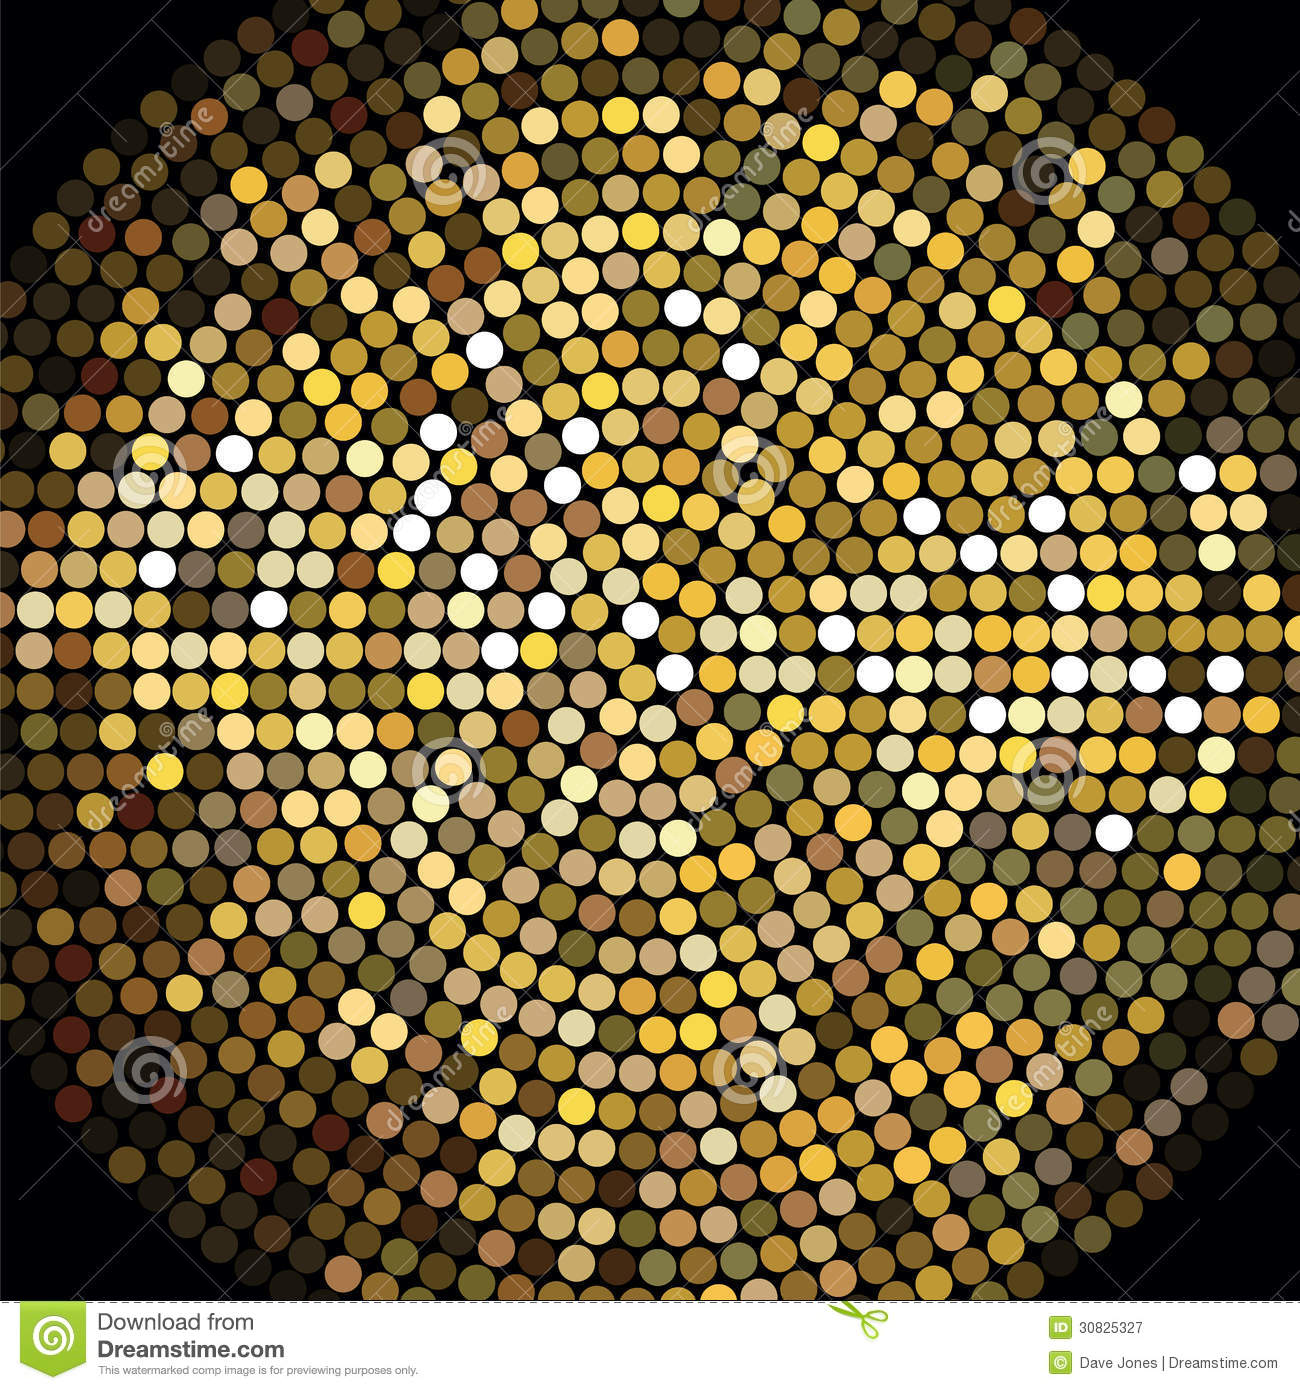 Golden Disco Ball Mosaic Background Royalty Free Stock